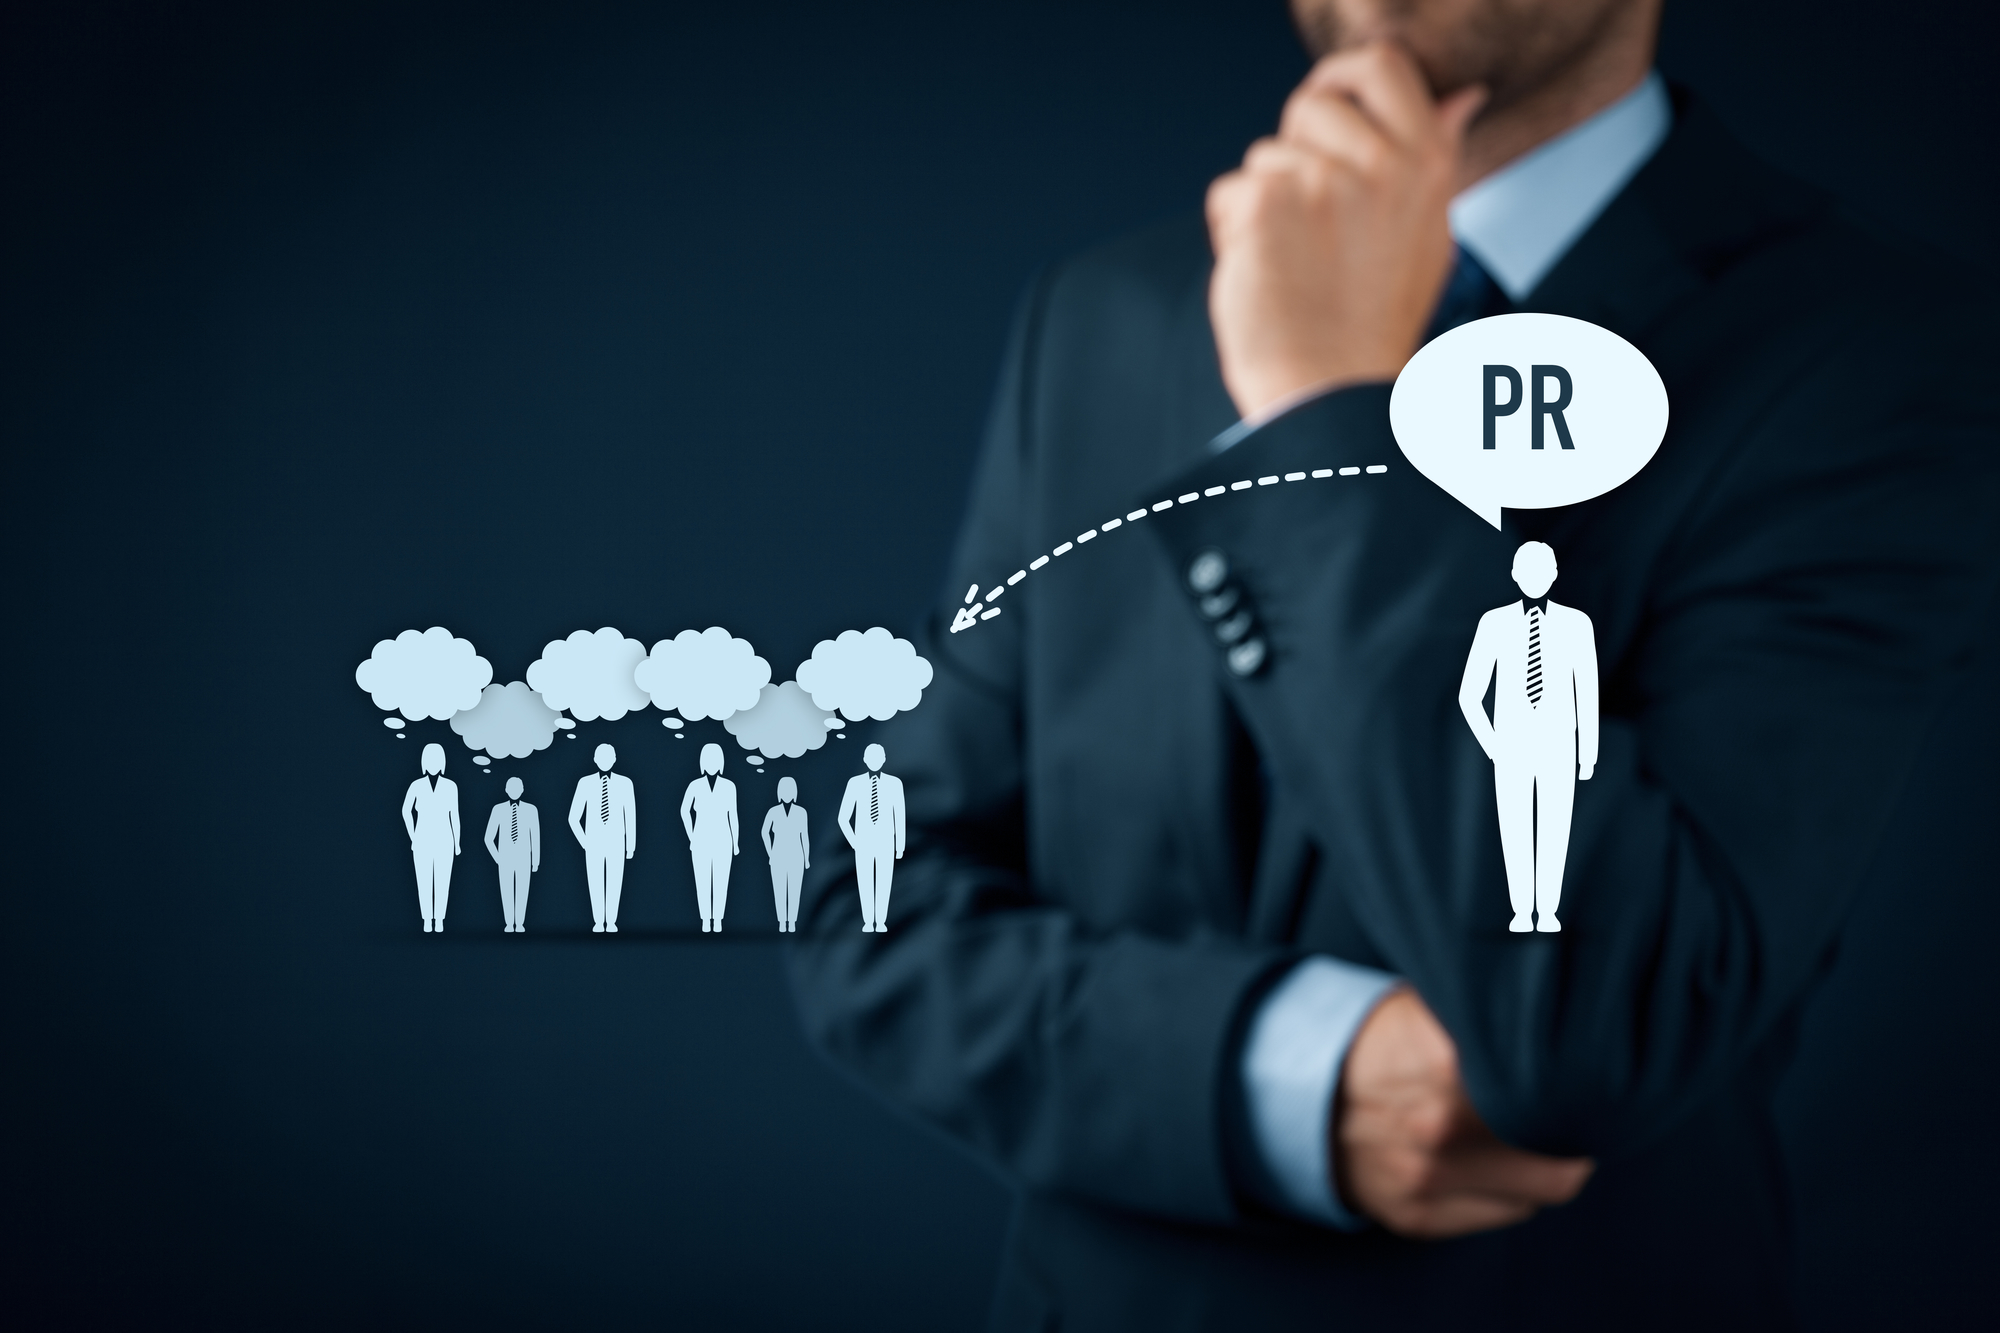 The true function of PR